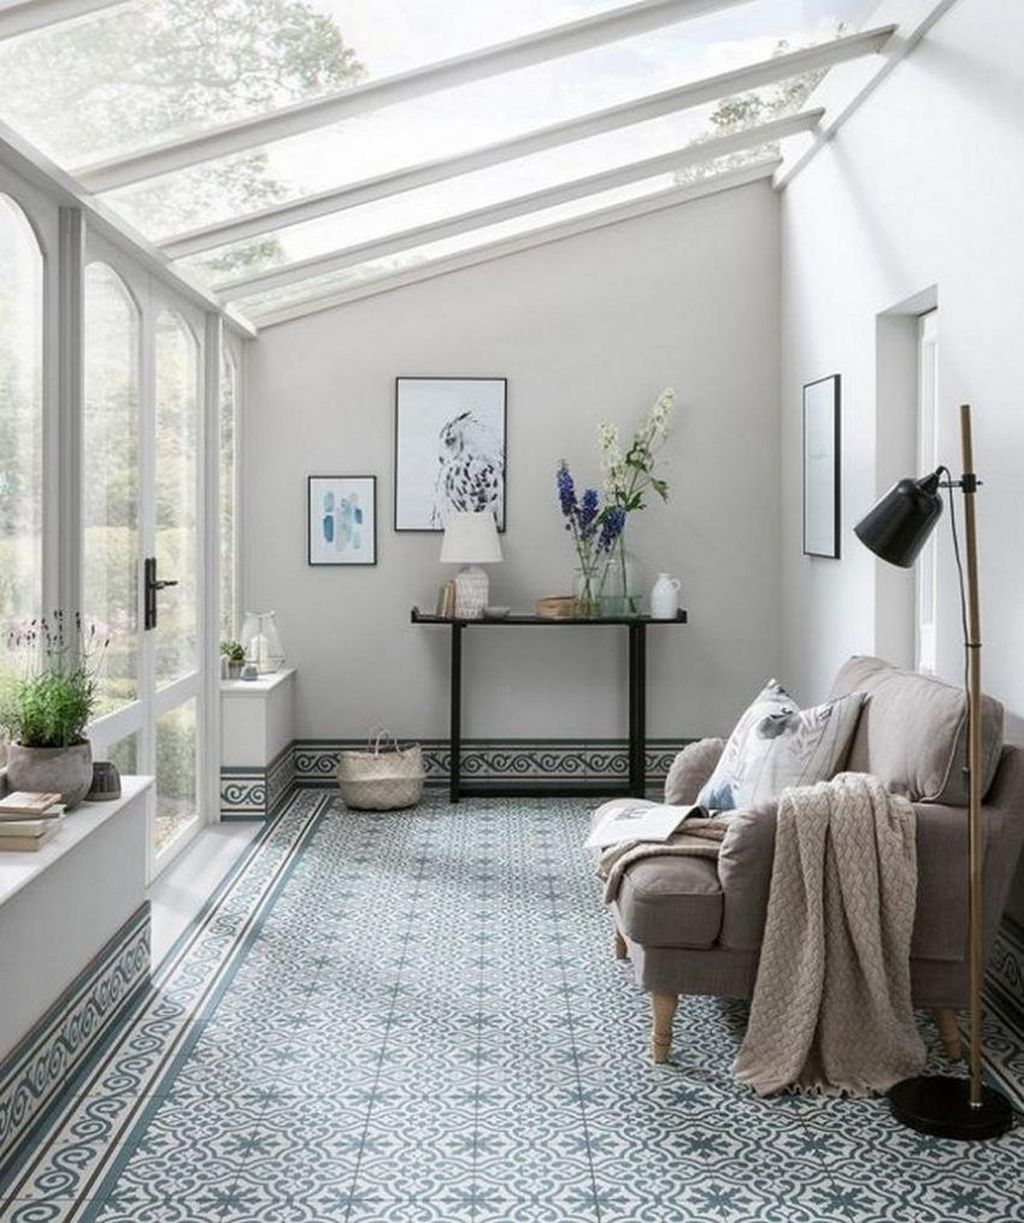 Admirable Sunroom Design Ideas You Must Have 17